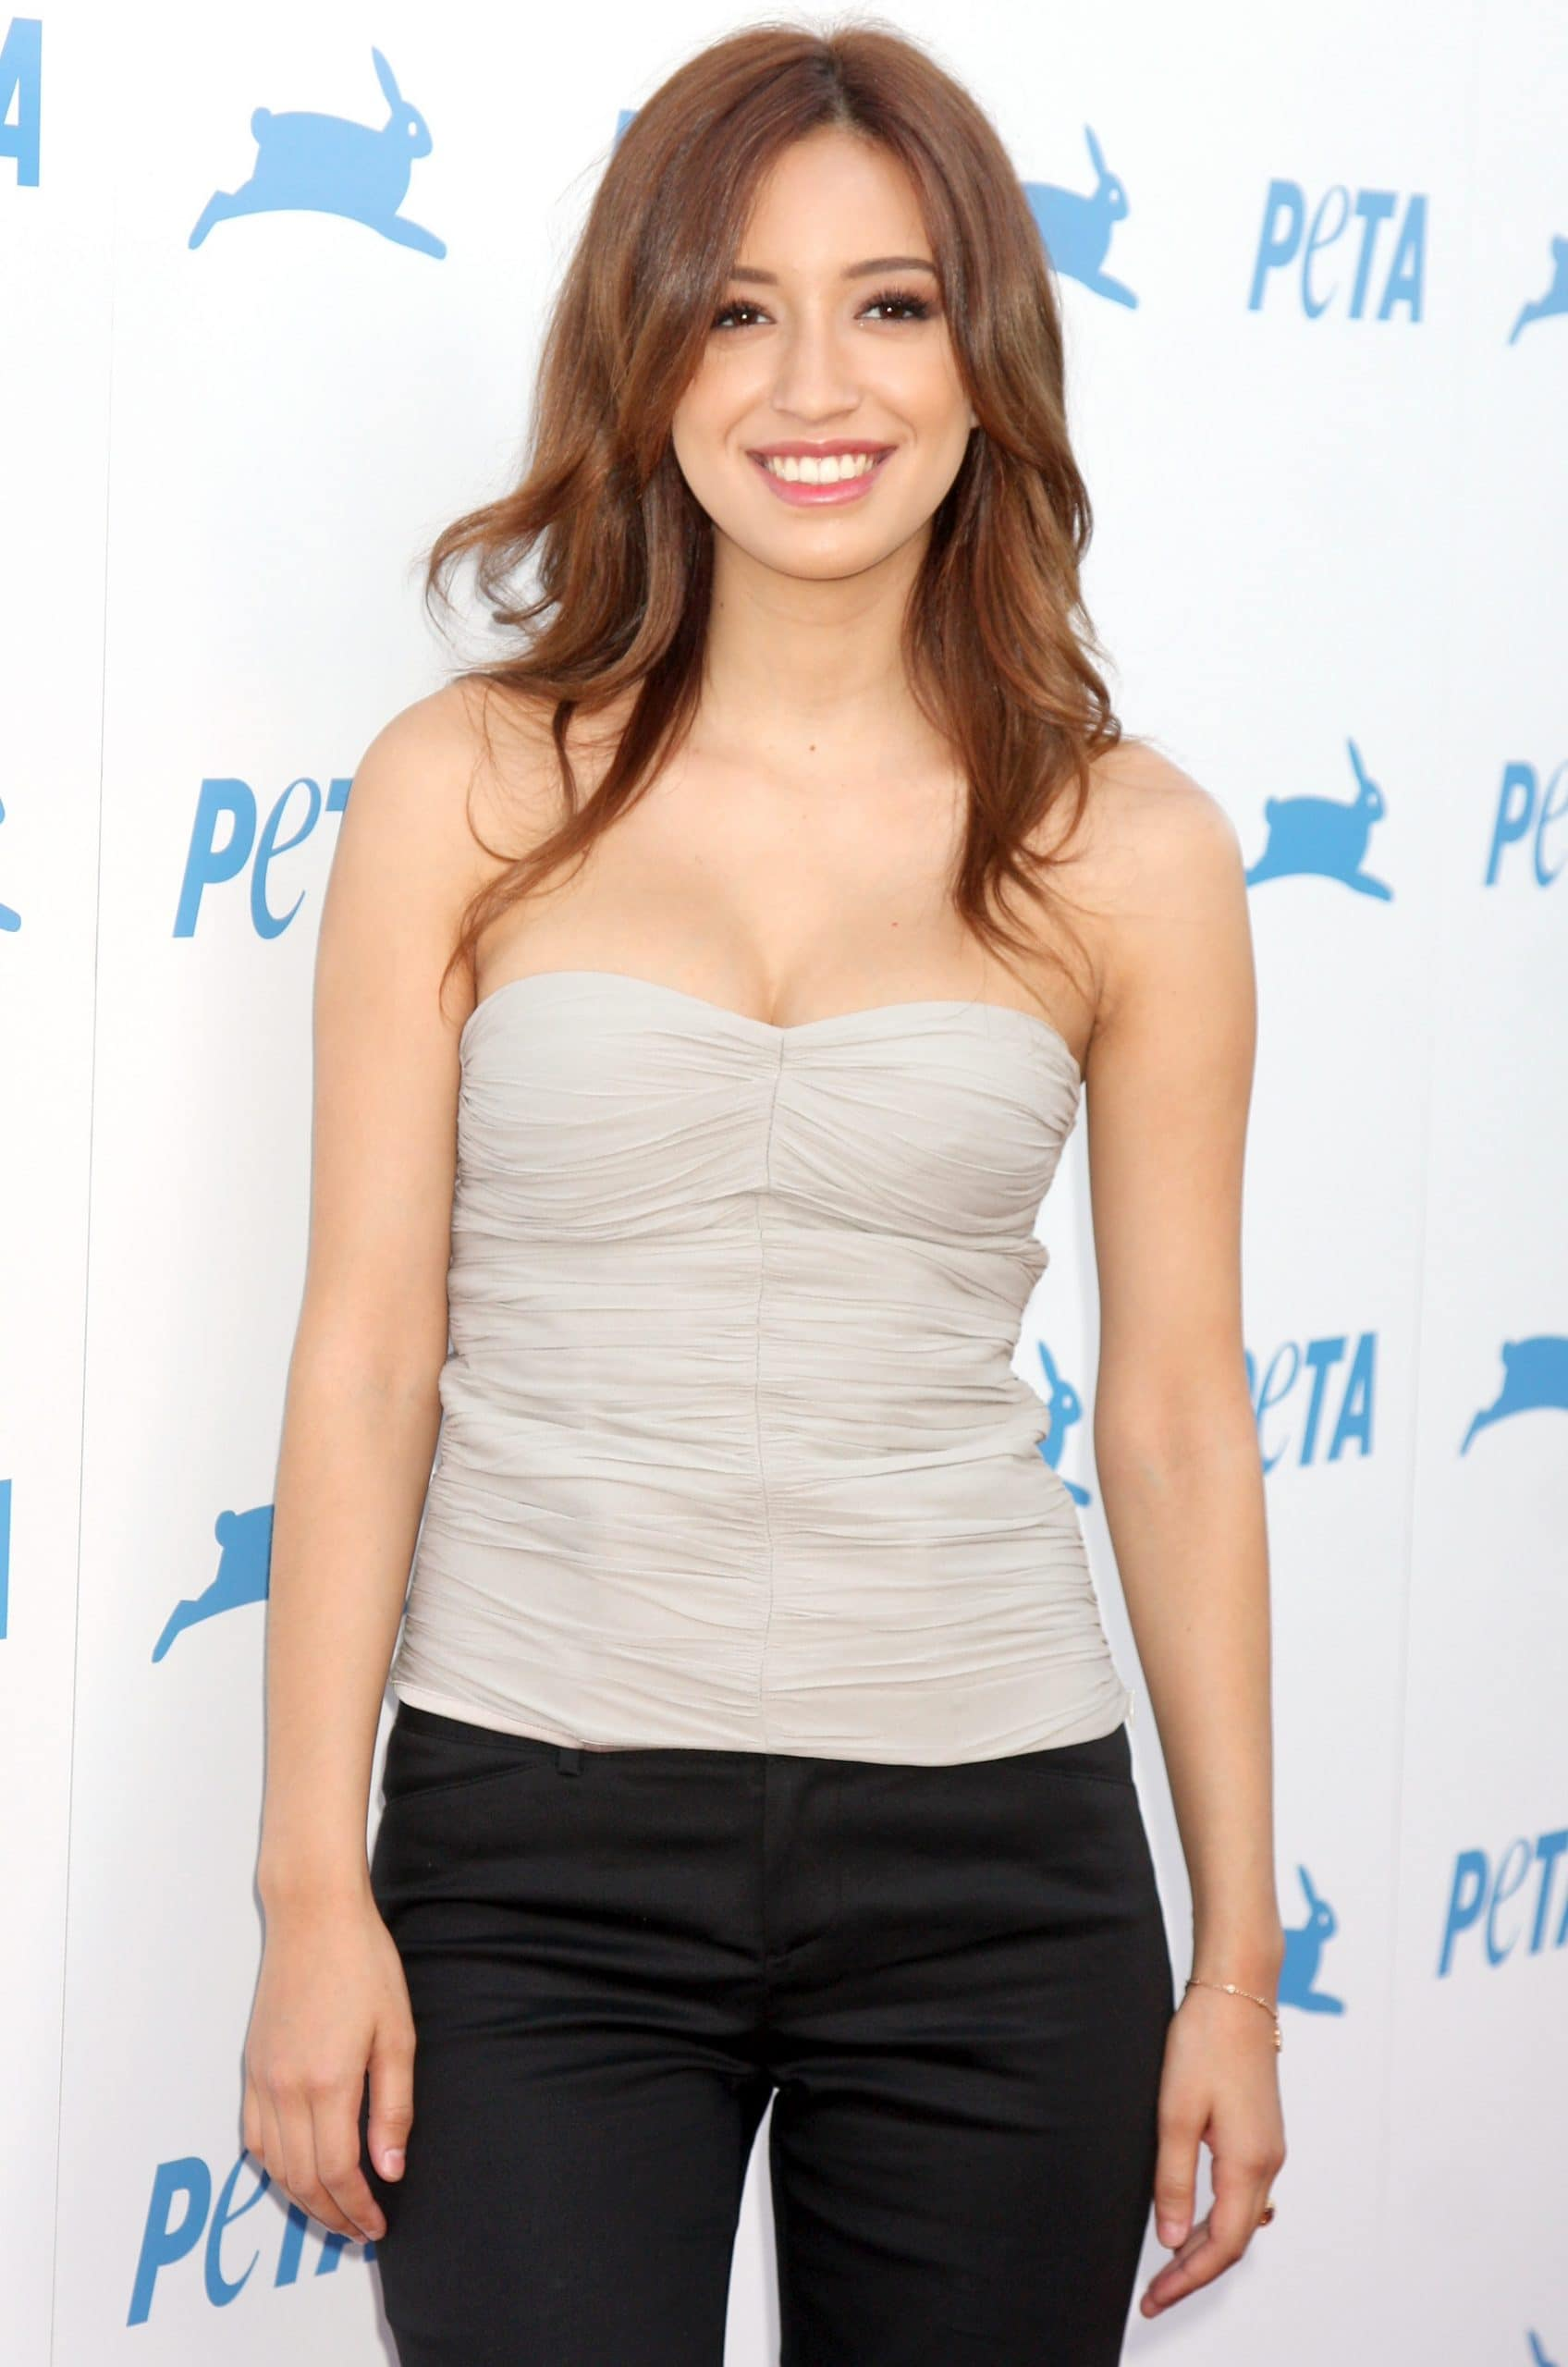 Animal rights activist Christian Marie Serratos has posed for a number of PETA campaigns promoting a vegan lifestyle